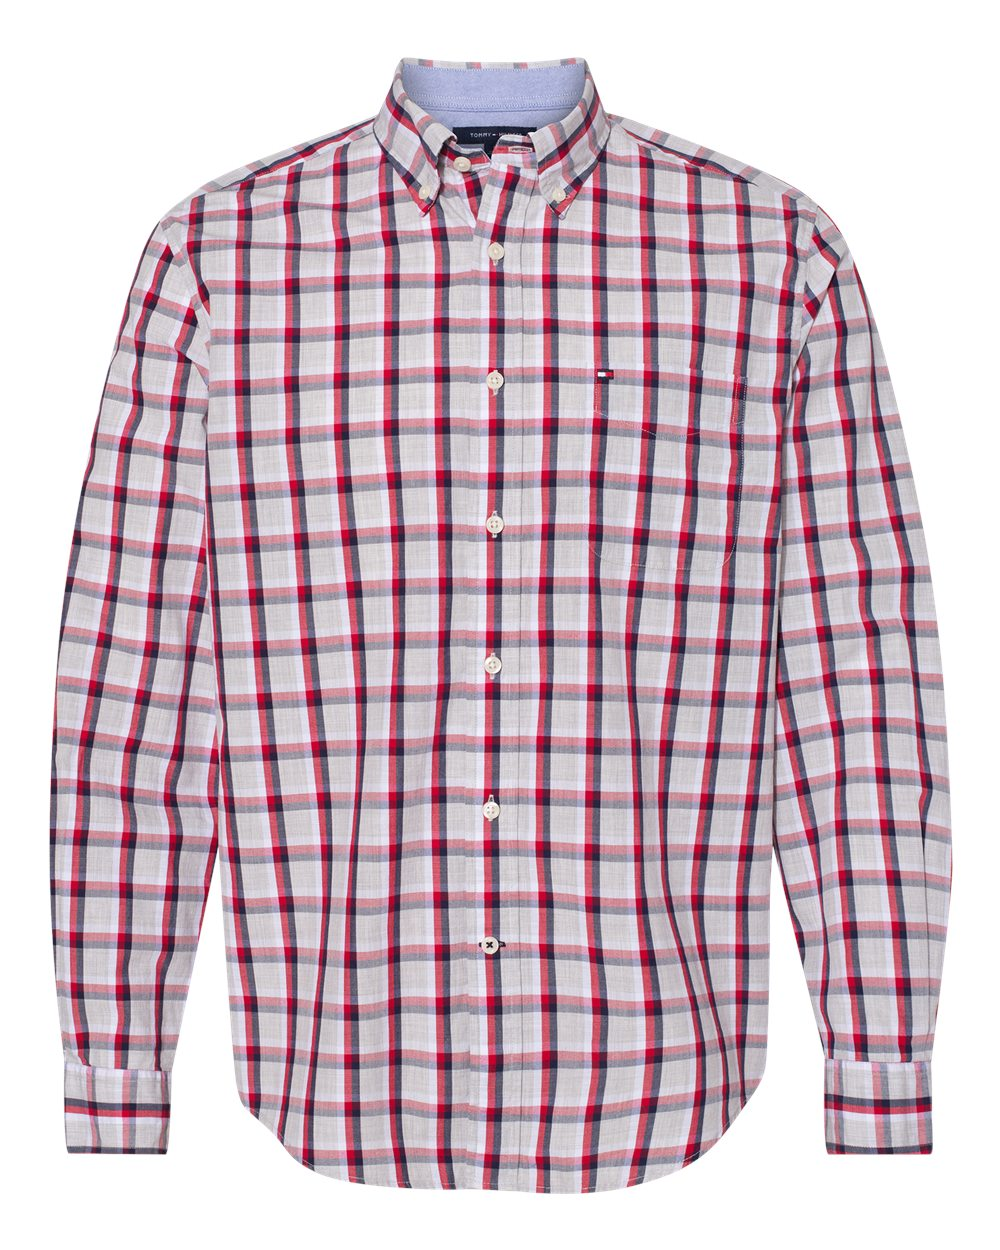 click to view Baron Plaid